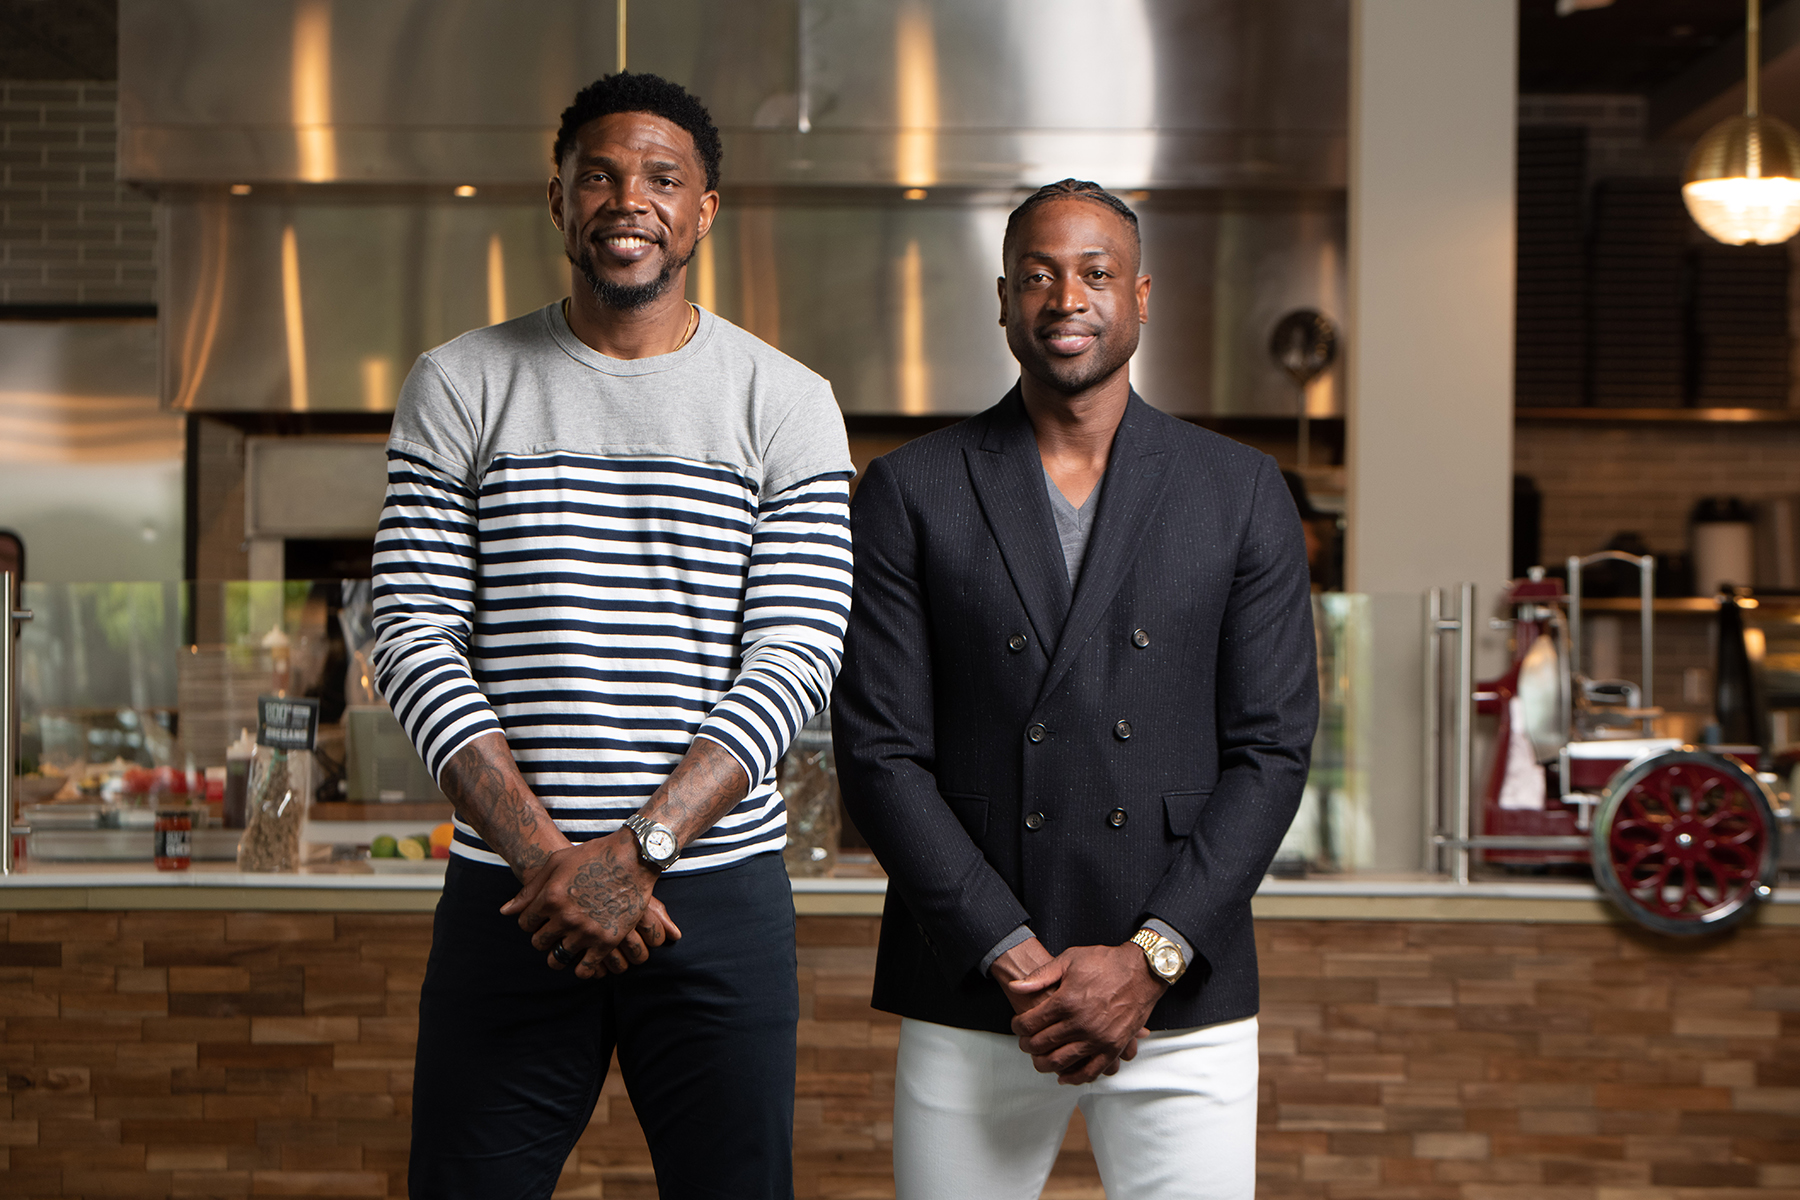 Picture of Dwyane Wade and Udonis Haslem standing in their restaurant